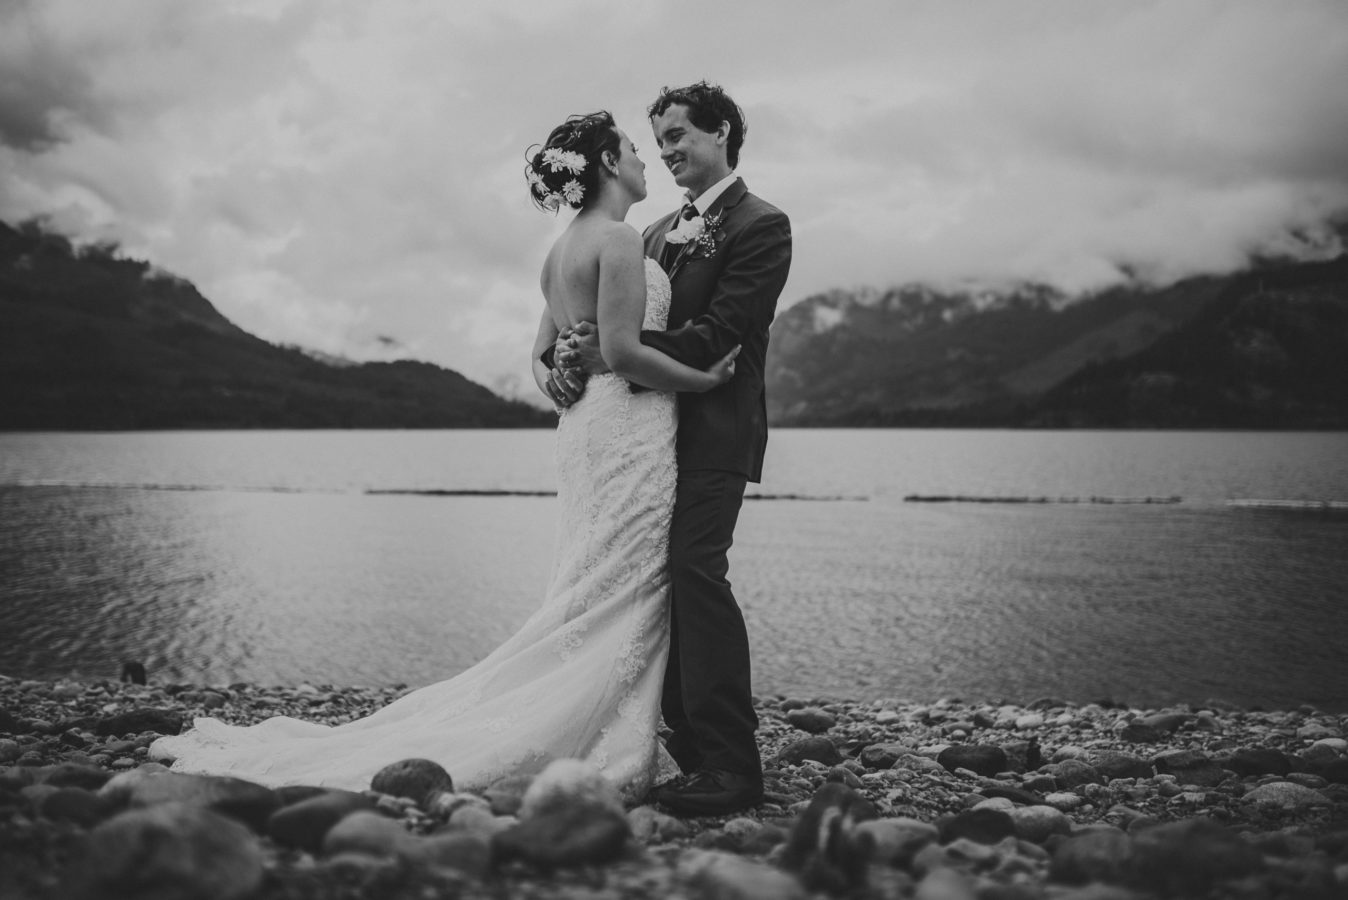 young bride and groom embracing in front of a lake & mountains on their wedding day